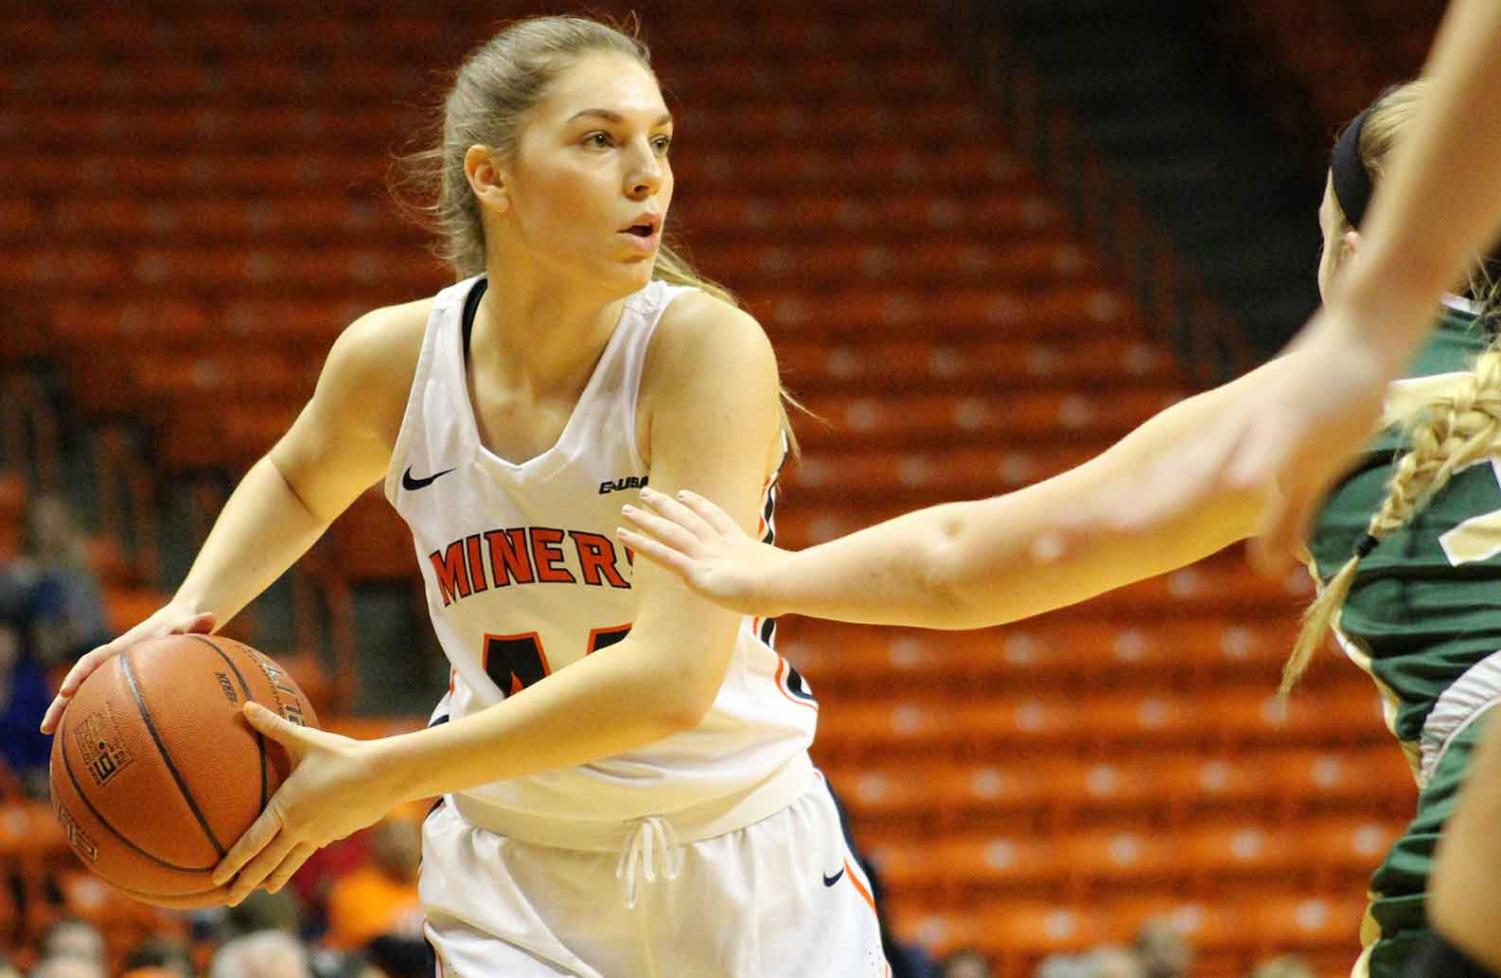 Katarina Zec looks to pass the ball to a teammate against UAB on Friday night at the Don Haskins Center.